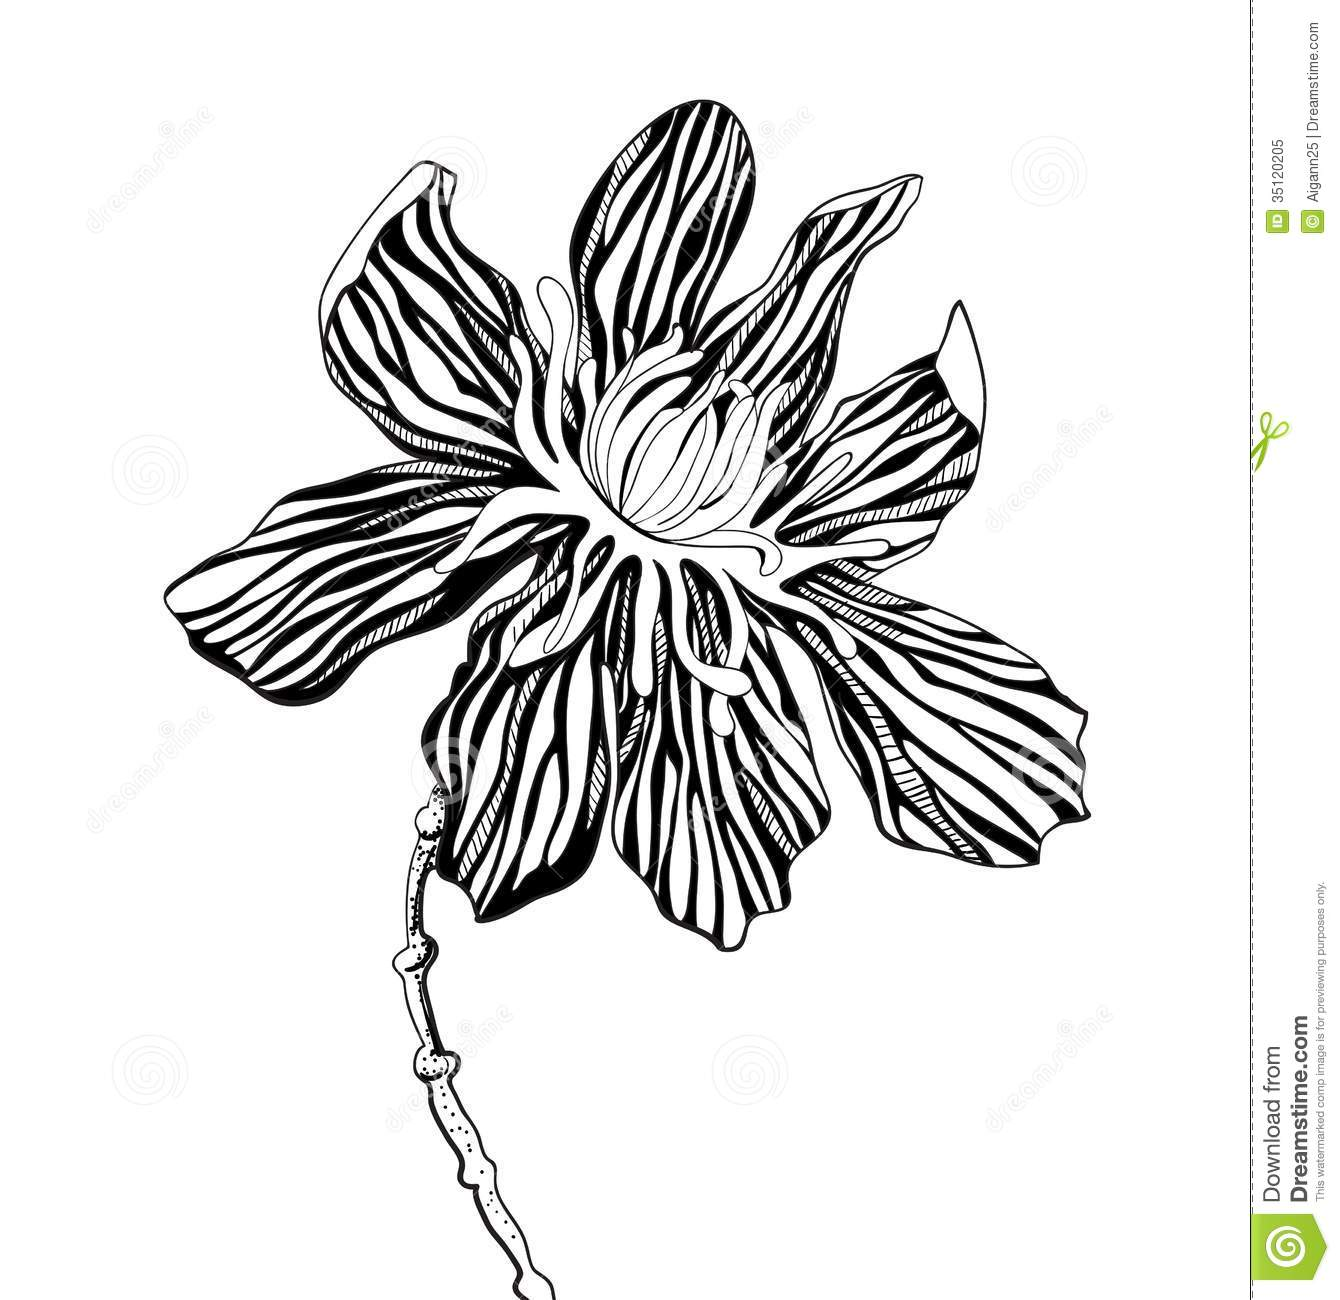 Decorative Graphic Flowers Stock Vector. Image Of Deco